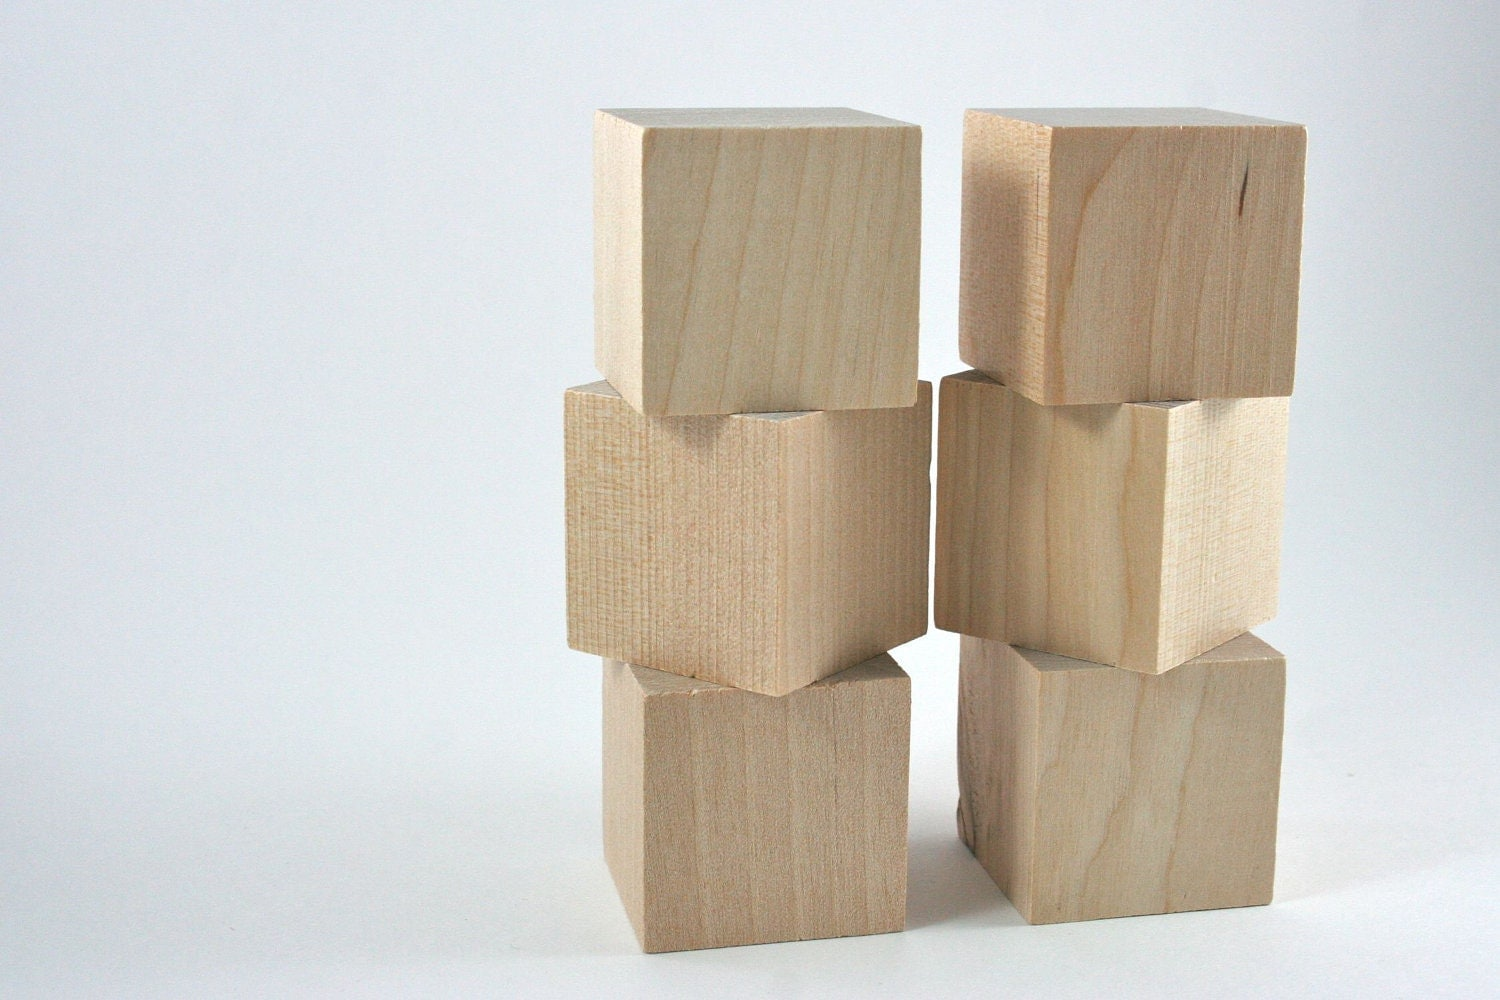 6 Unfinished Wood Blocks 1 5 Inch 38mm Wooden Blocks For